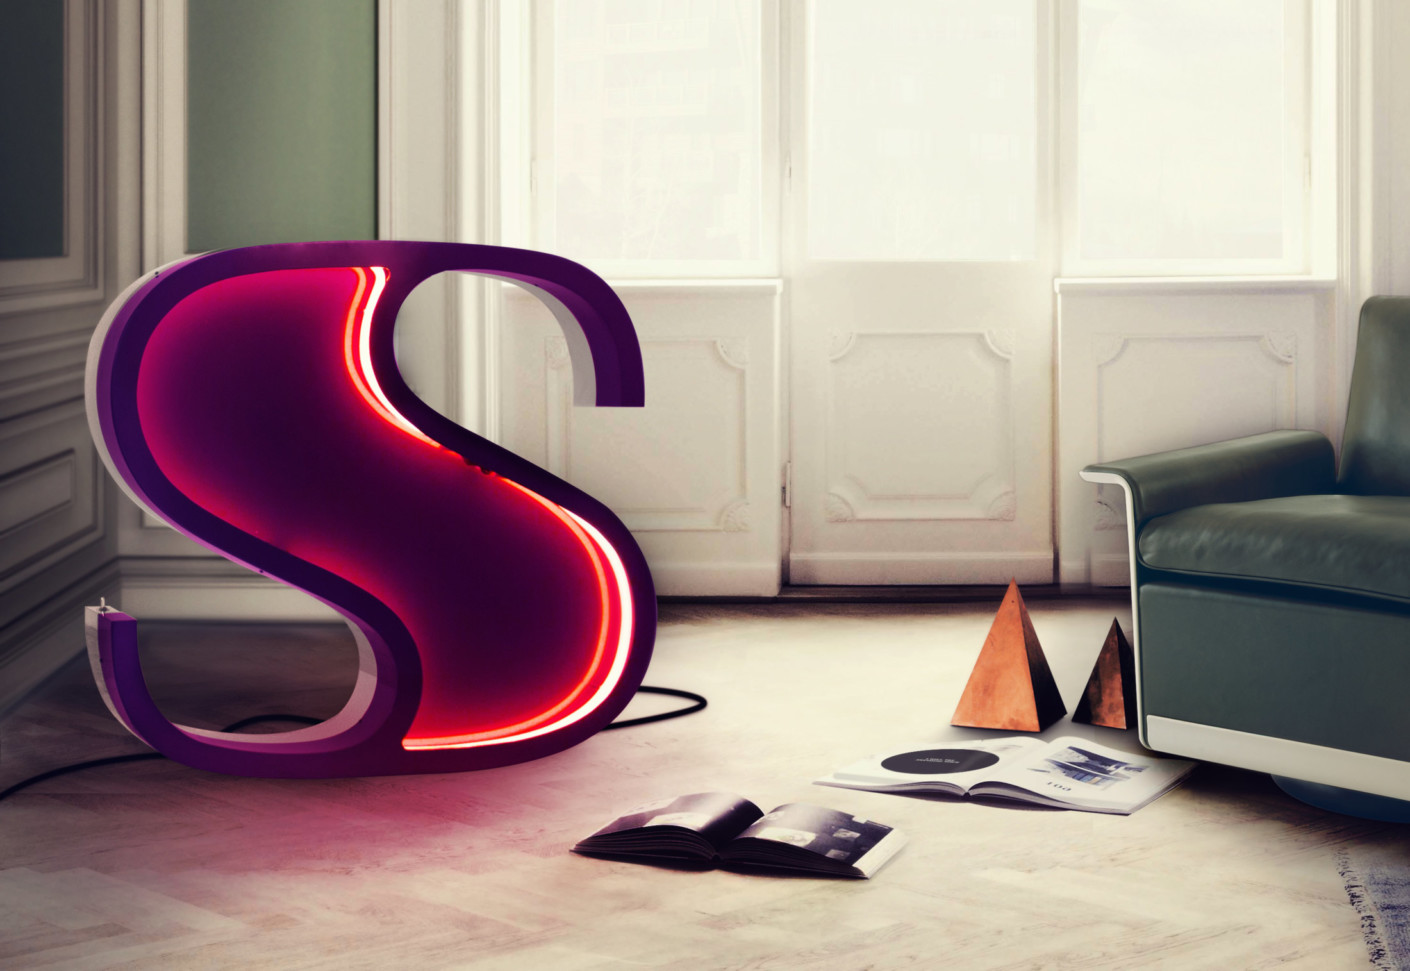 8 Modern Floor Lamps Pictures That Are Hot on Pinterest This Week (1) hot on pinterest 8 Modern Floor Lamps Pictures That Are Hot on Pinterest This Week 8 Modern Floor Lamps Pictures That Are Hot on Pinterest This Week 7